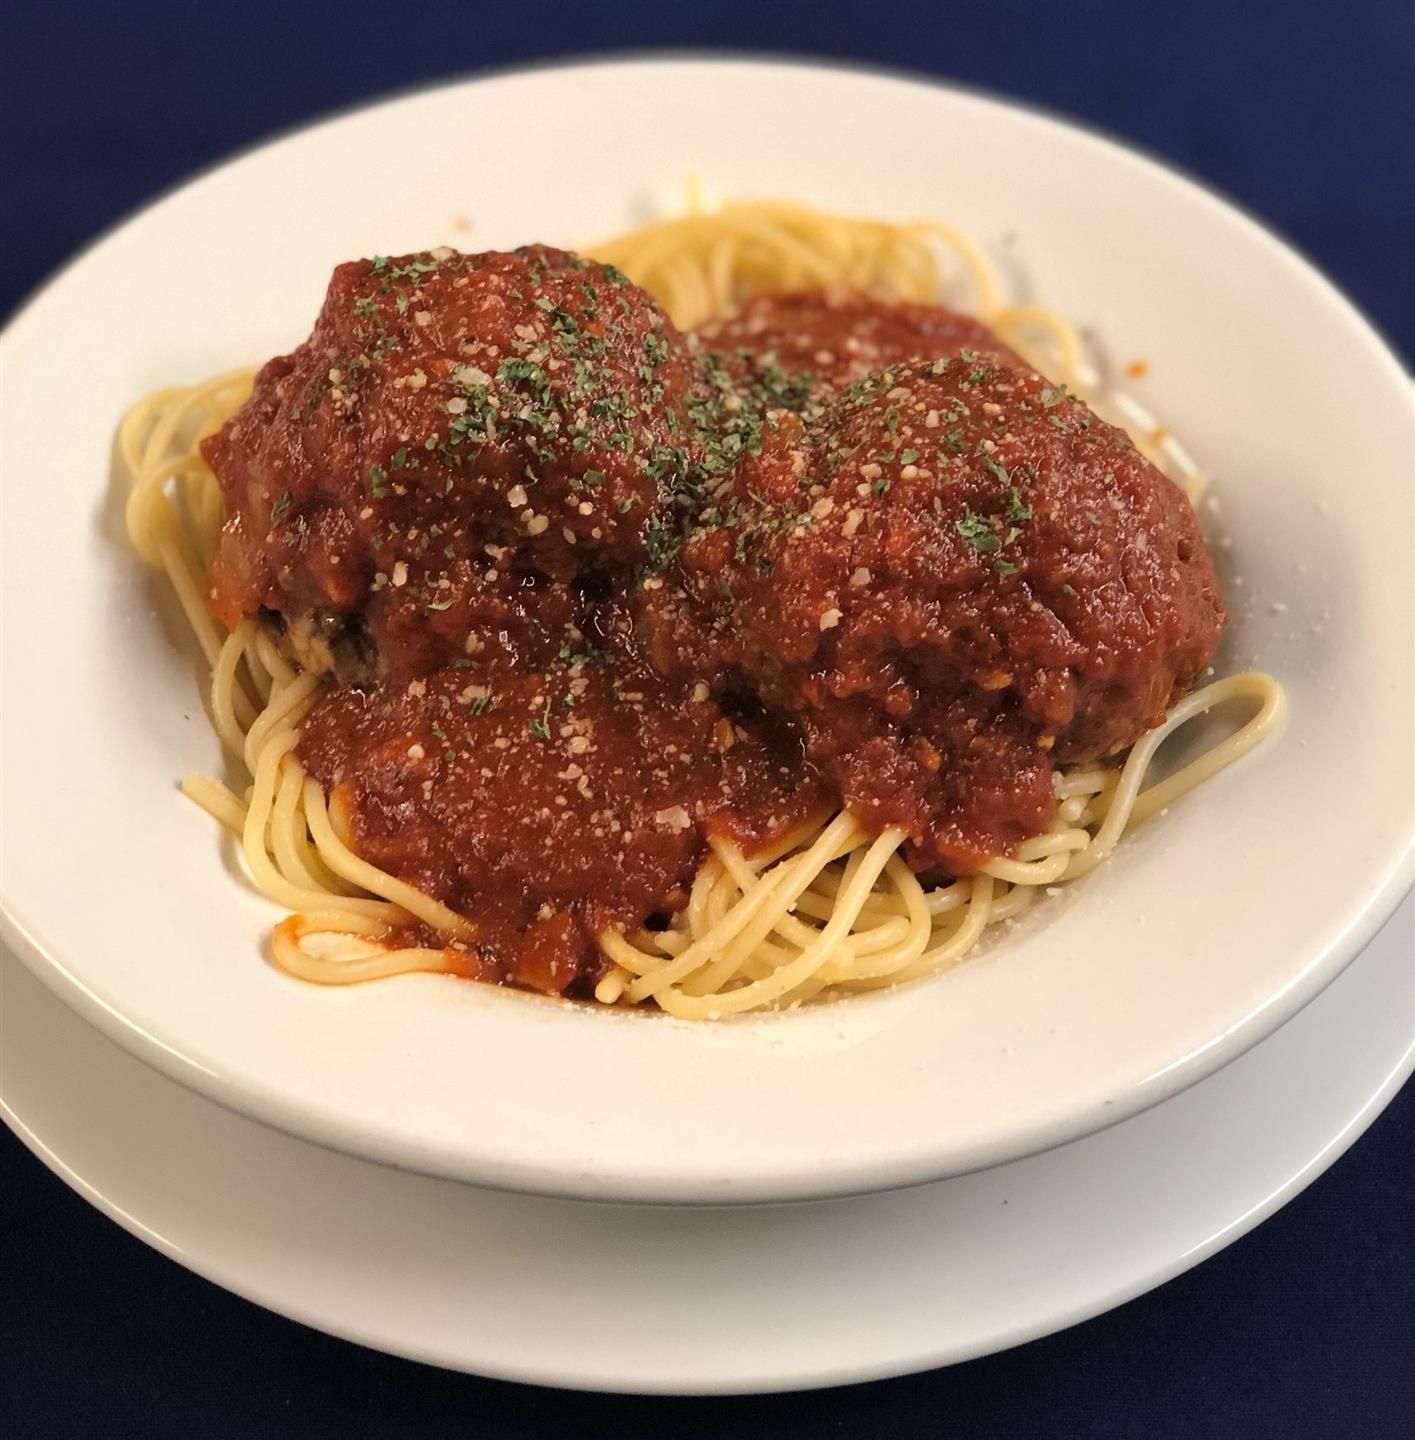 spaghetti and meatballs covered in marinara sauce